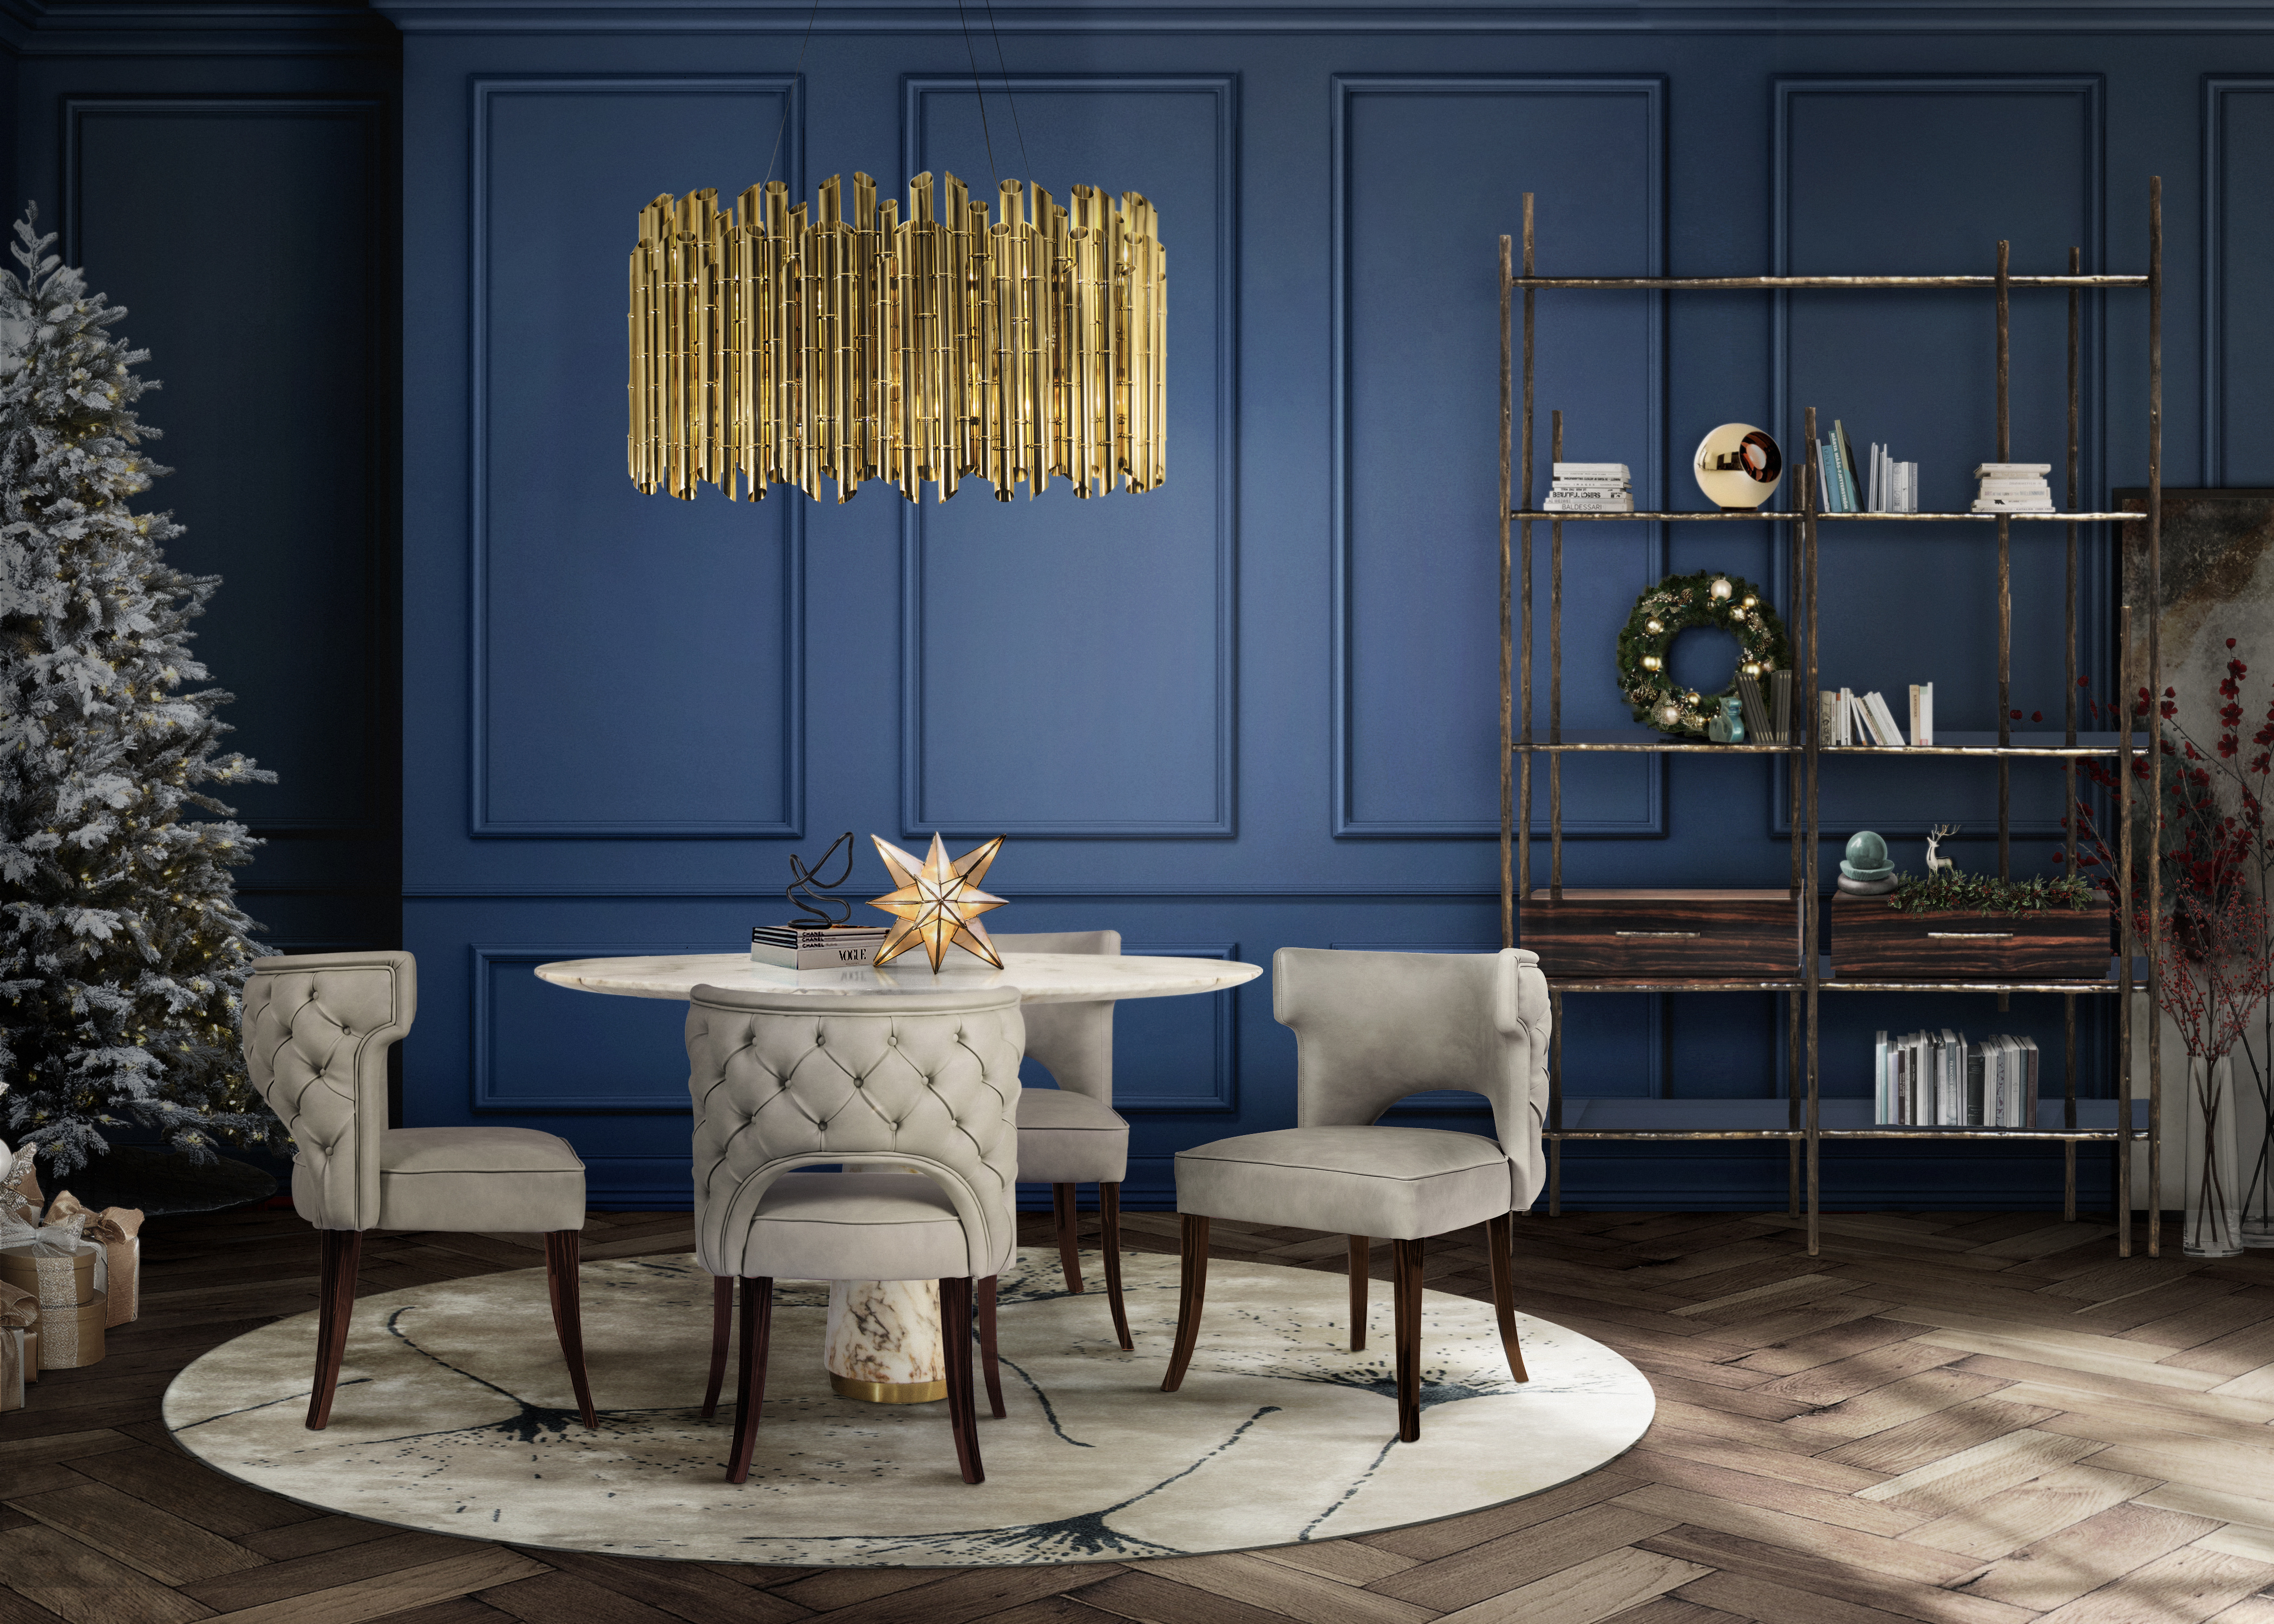 dining room Ideas To Take Your Dining Room to the Next Level winter trend 2